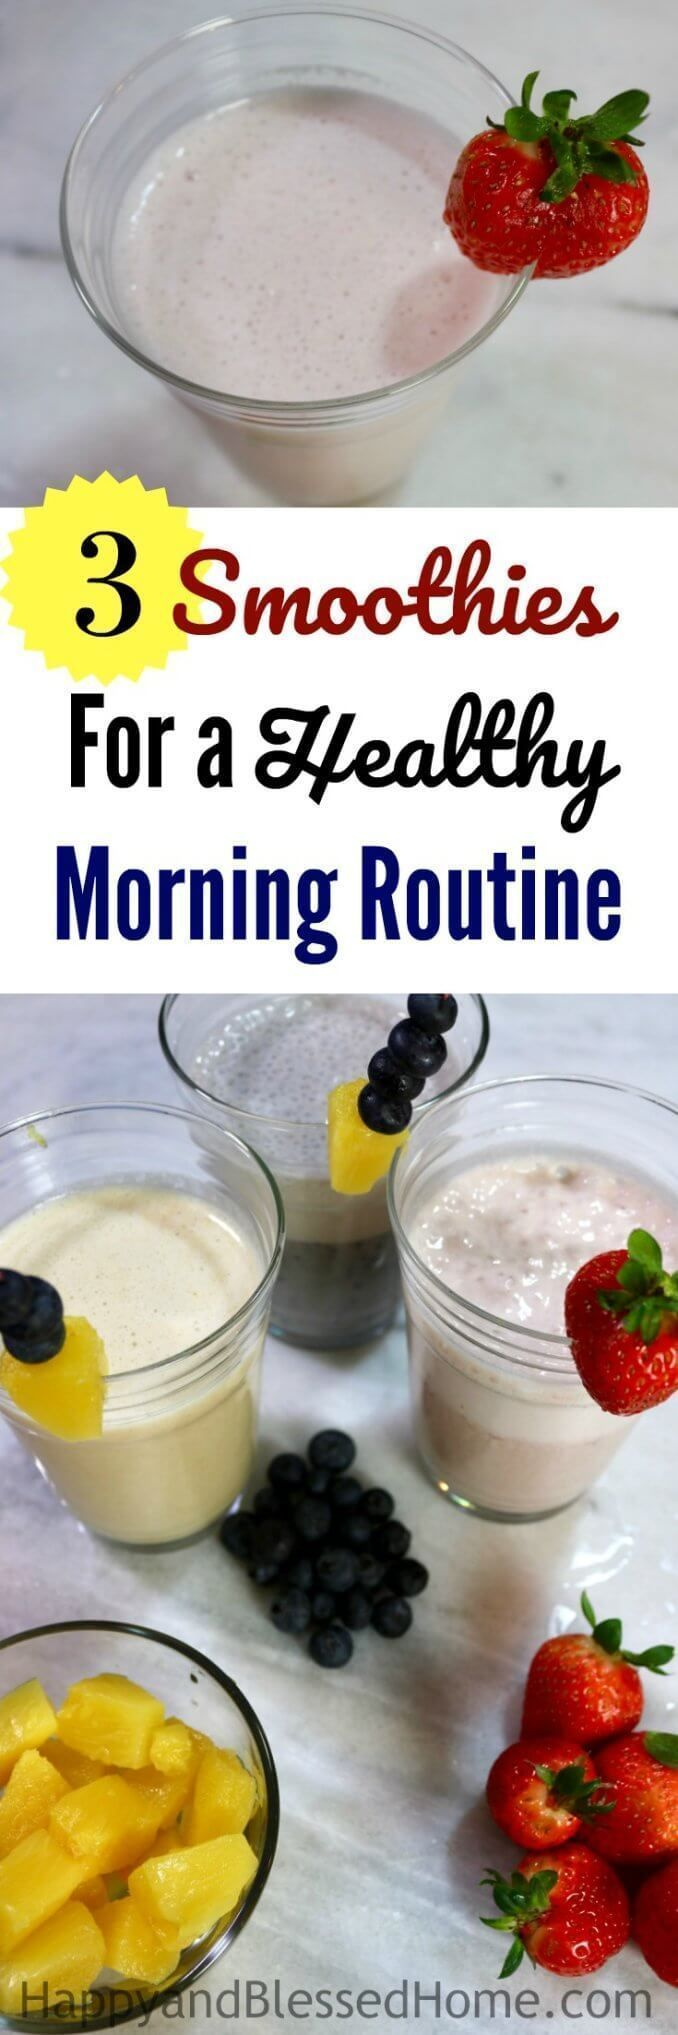 3 Easy and Tasty Smoothie Recipes for a Healthy Morning Routine - The dairy-free options are only around 300 calories each and are packed with protein. Perfect for breakfast or an after workout pick-me-up. I can even give these to my kids for an after school snack. And the fruit flavors are delicious - pineapple smoothie, strawberry smoothie and blueberry smoothie - YUM! Ad #ProgressIsPerfection #CBias